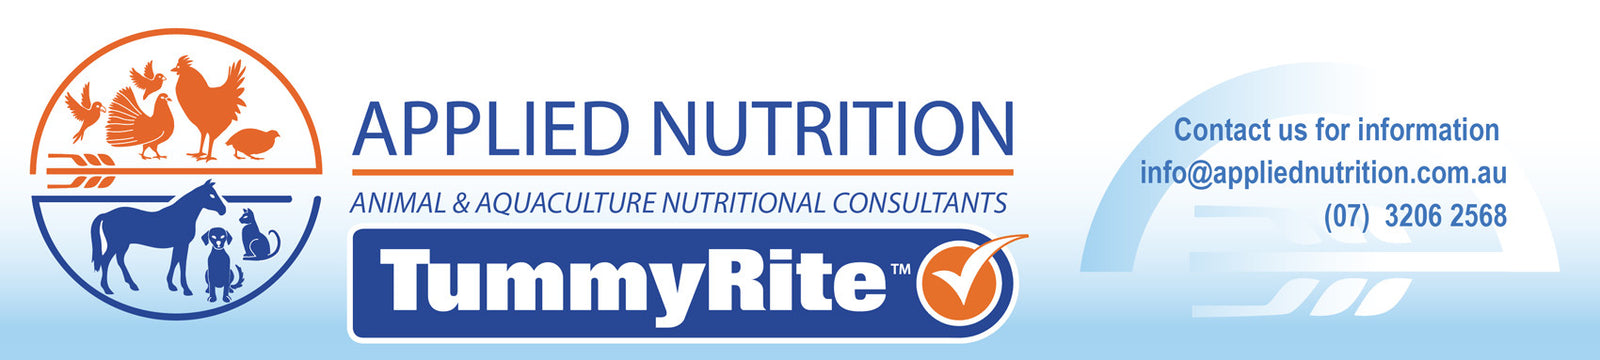 Applied Nutrition - TummyRite